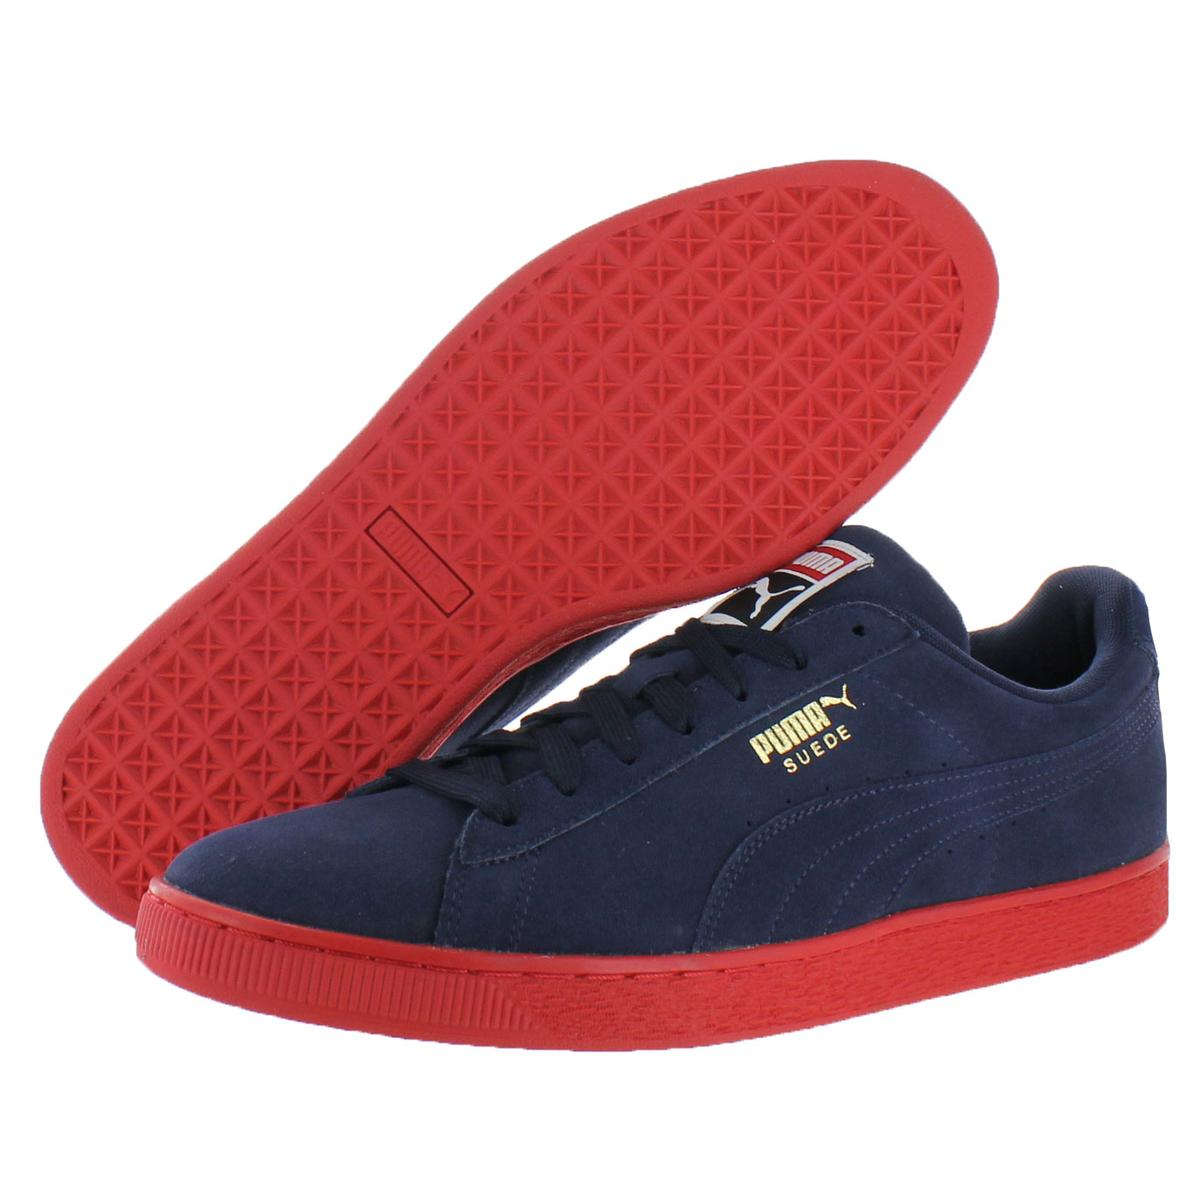 Puma-Suede-Classic-Men-039-s-Fashion-Sneakers-Shoes thumbnail 31